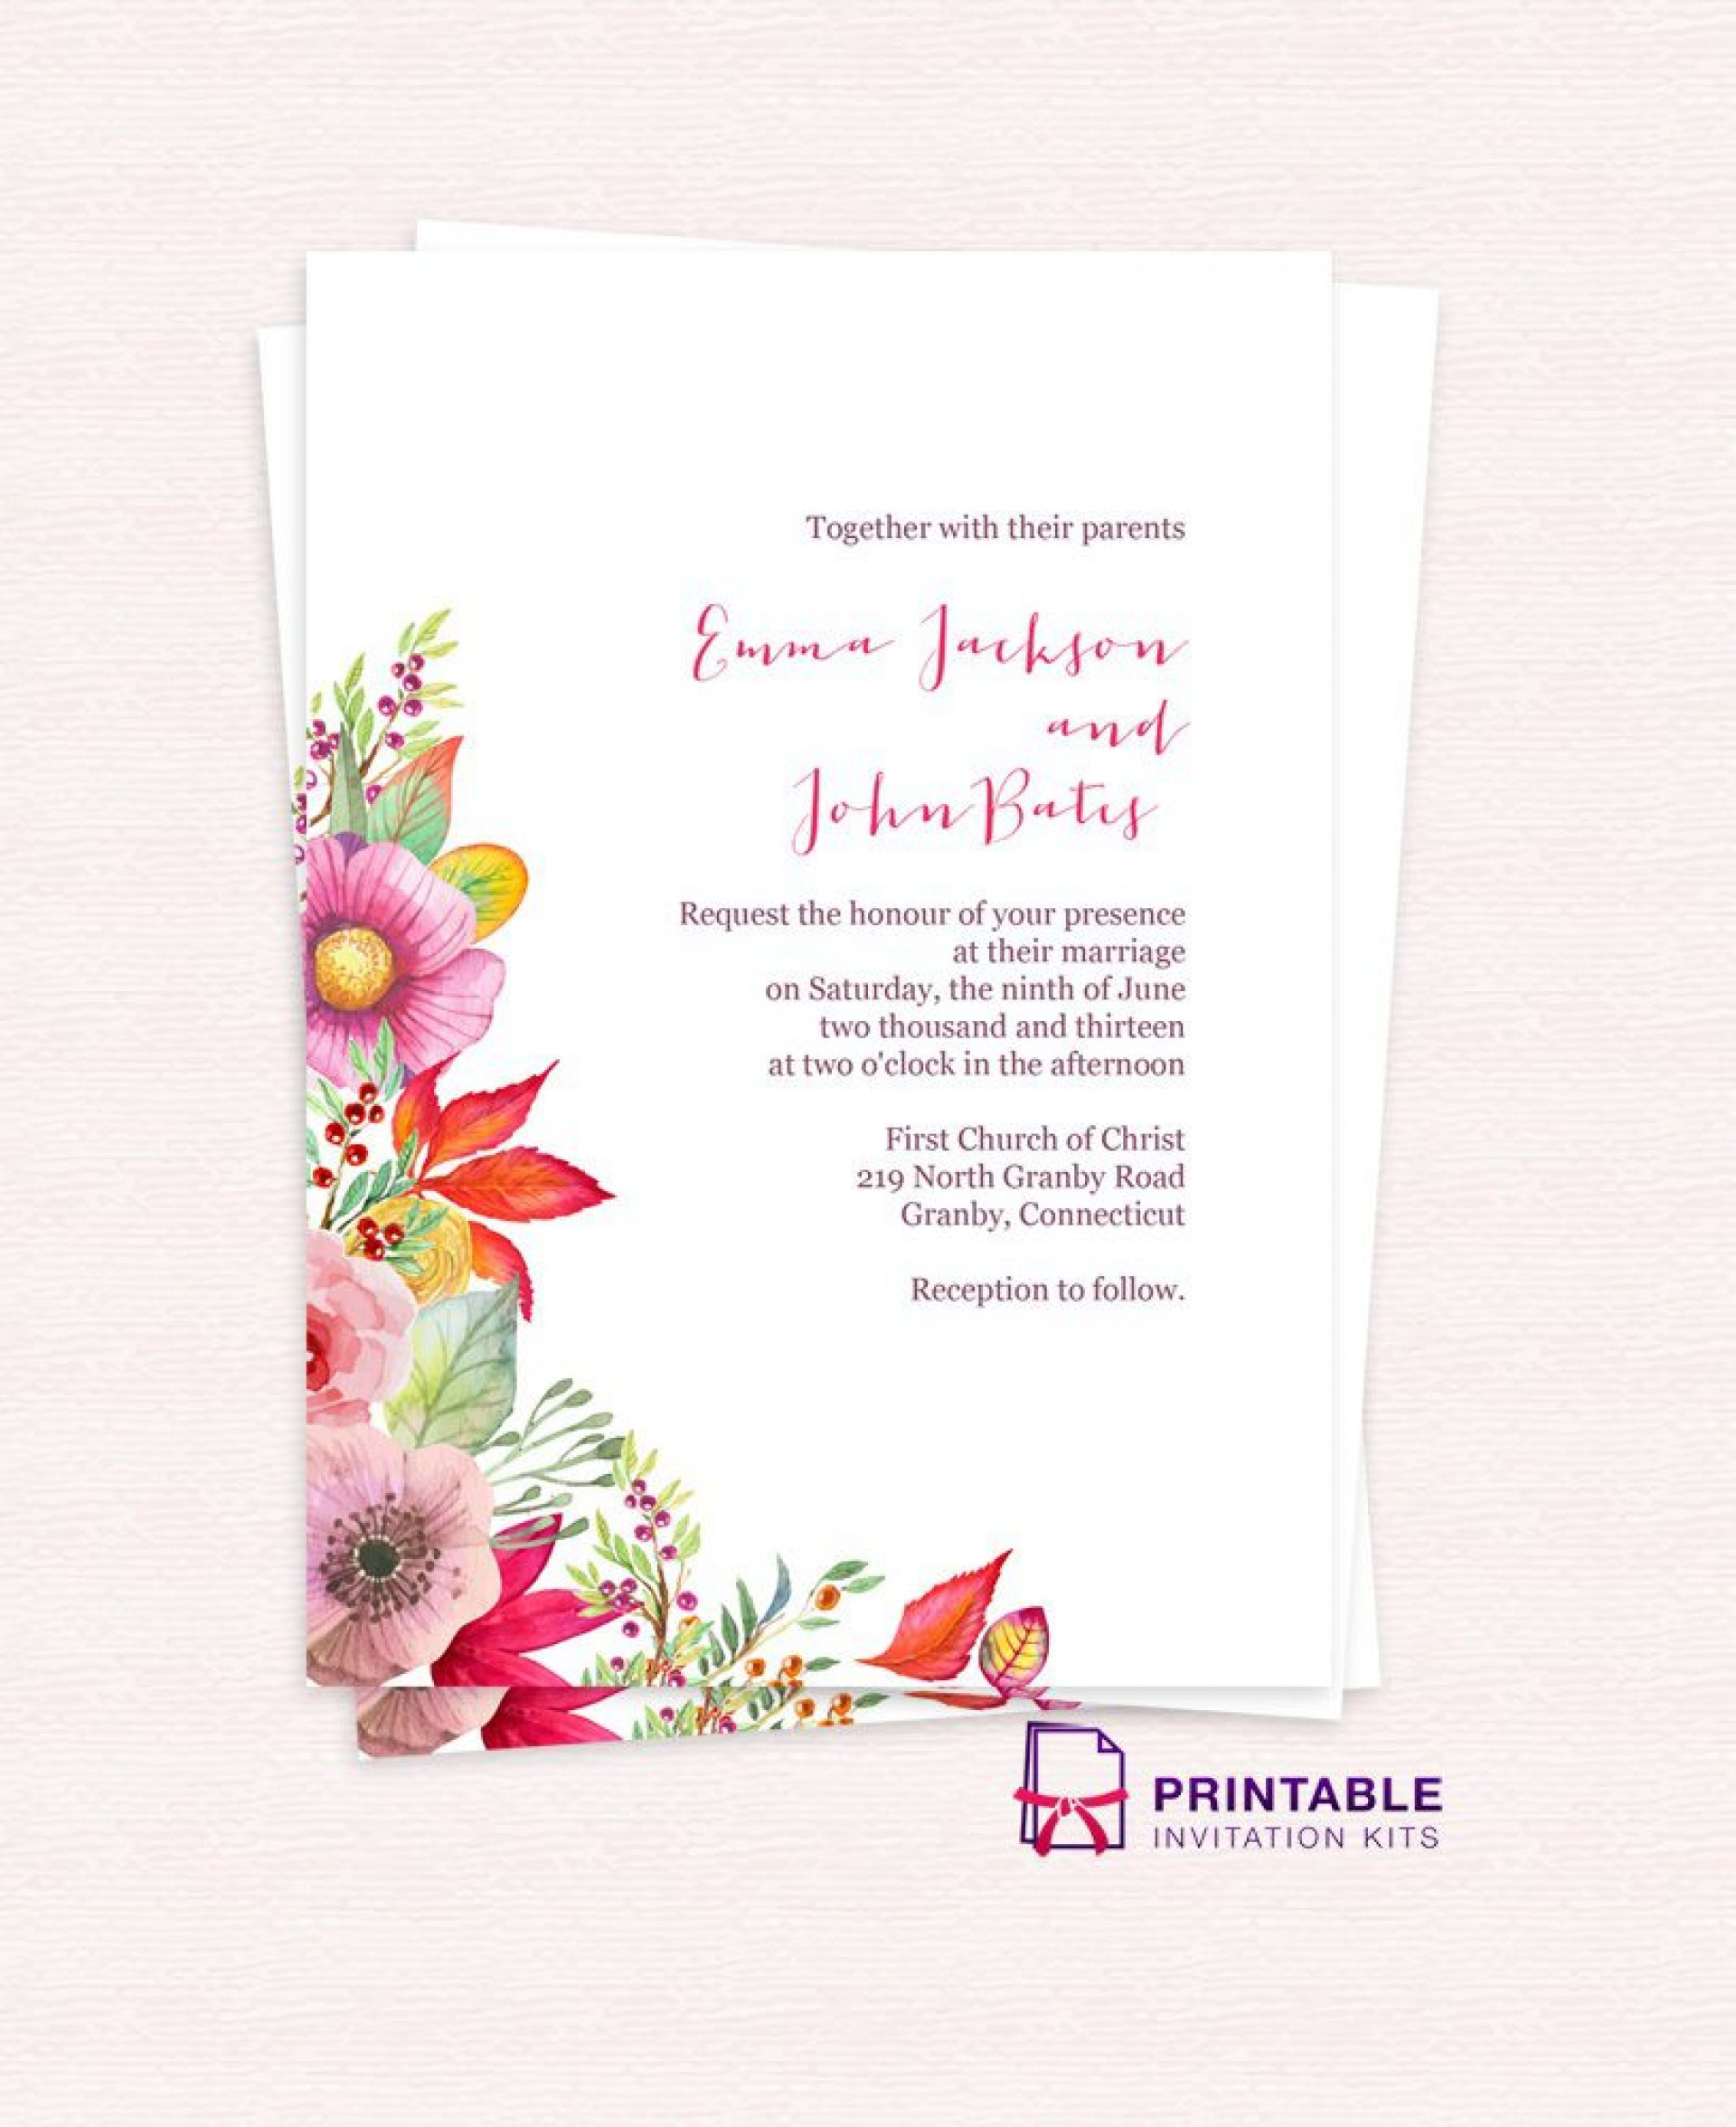 003 Wonderful Free Download Marriage Invitation Template High Def  Card Design Psd After Effect1920